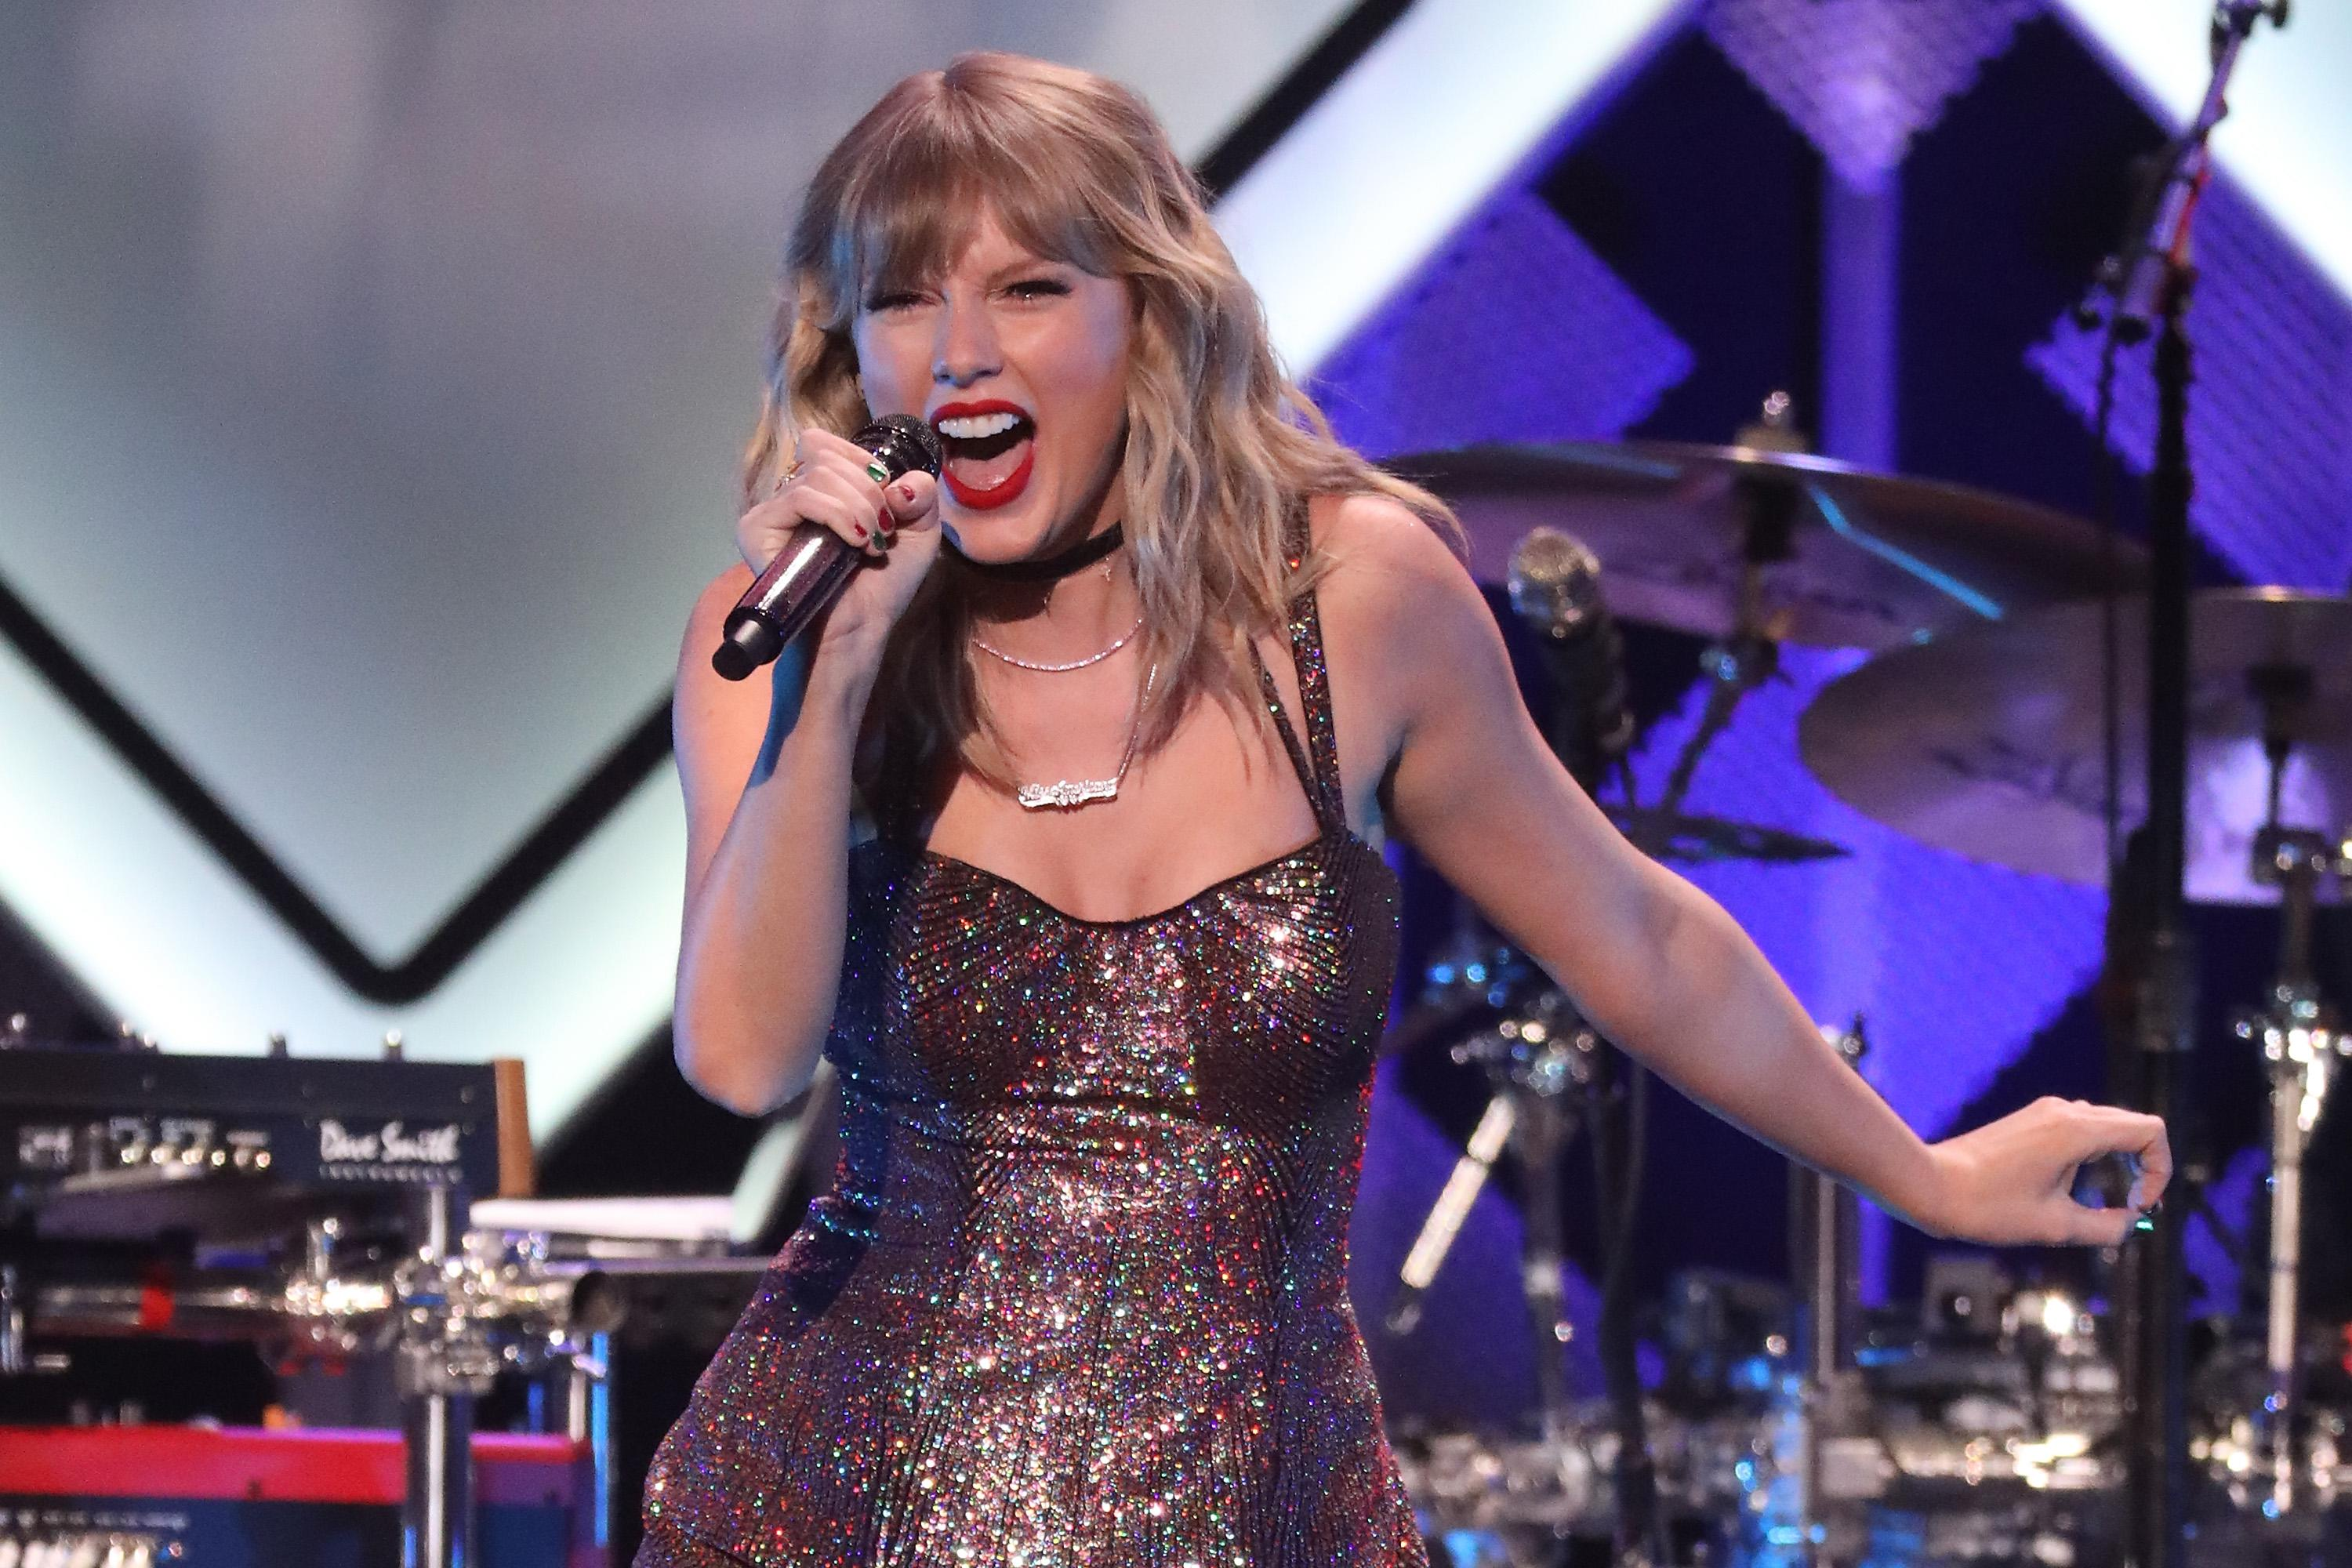 Taylor Swift rings in her 30th birthday party with Jingle Bell concert and cake decorated with cats